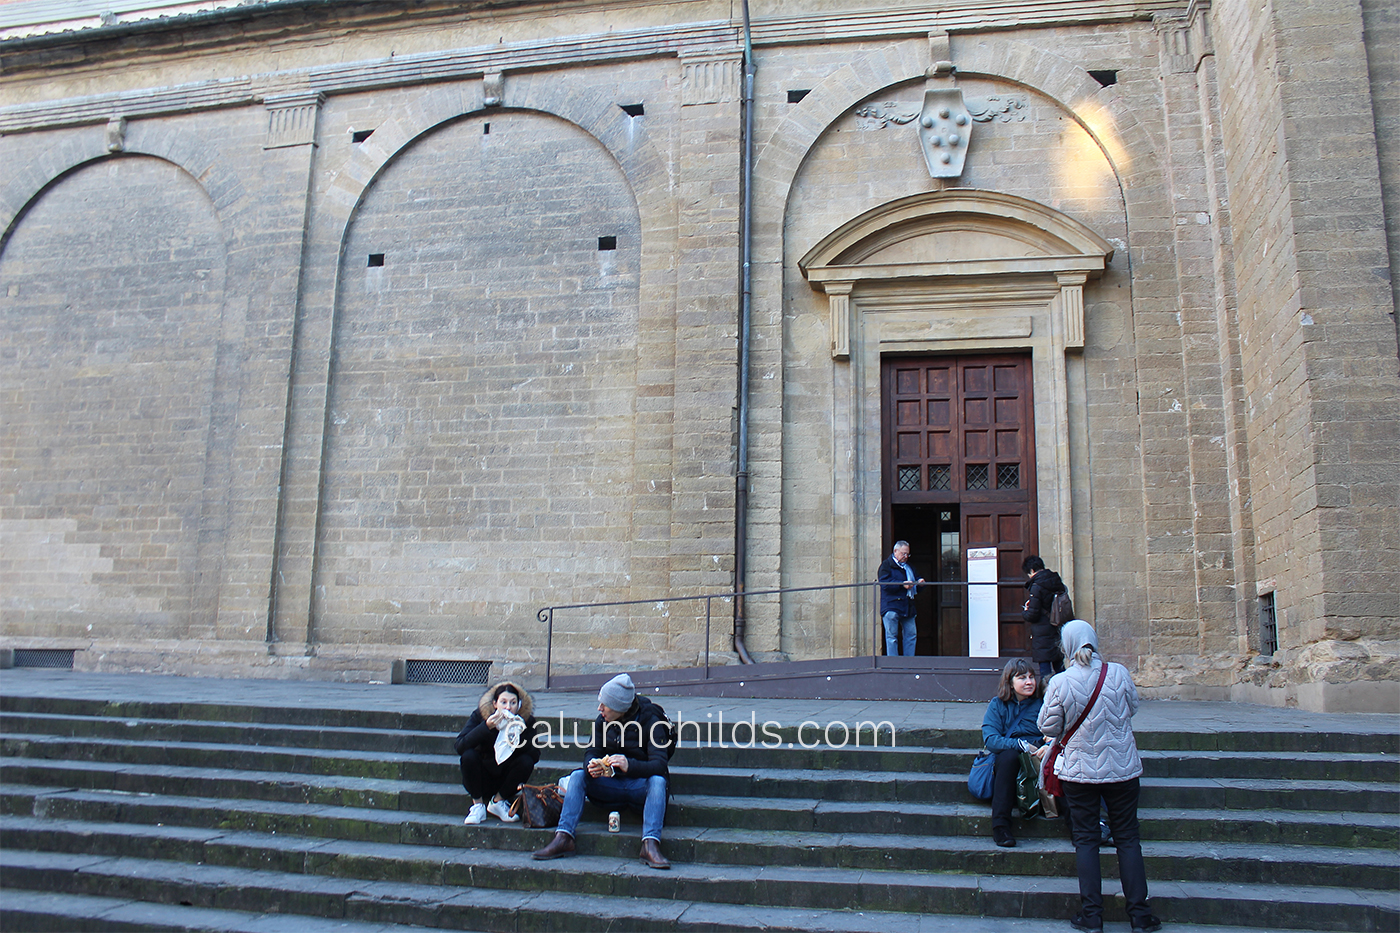 People wait outside a large stone building.